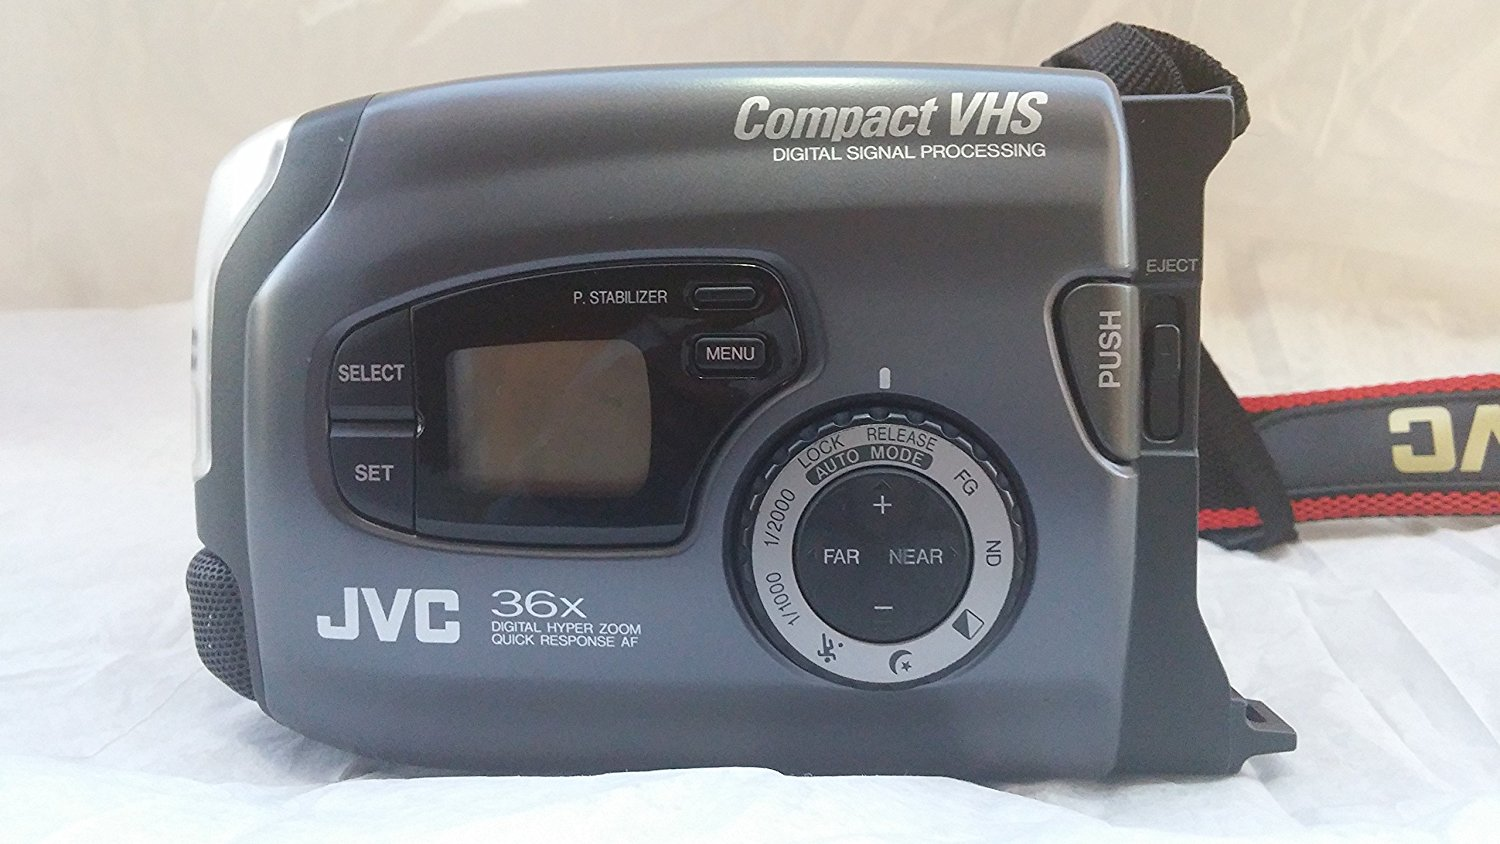 Jvc Compact Vhs Camcorder Gr Ax920 Free Image